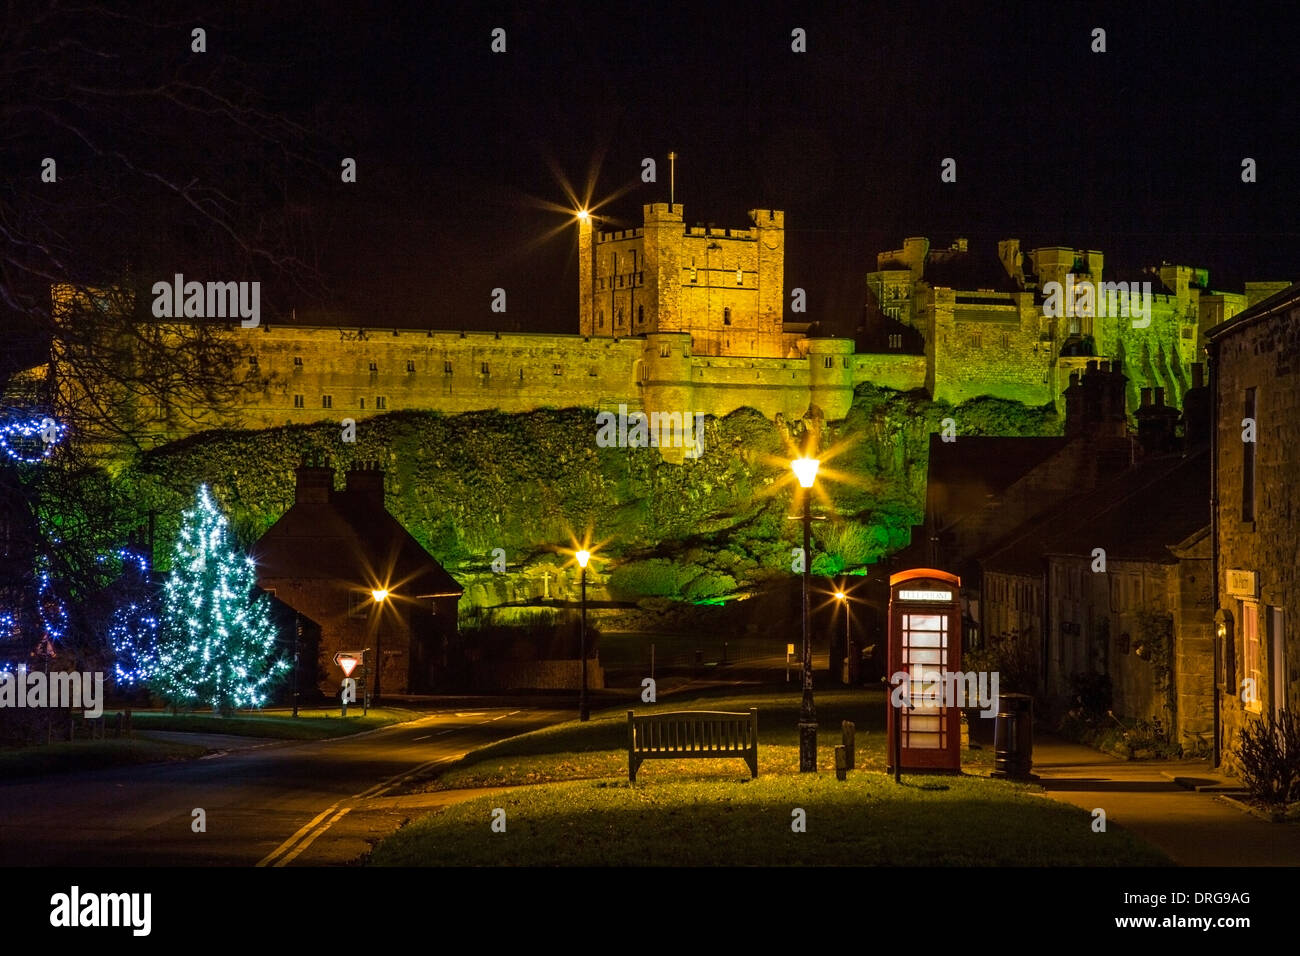 Bamburgh Castle in Bamburgh, Northumberland floodlit at night at Christmas time - Stock Image